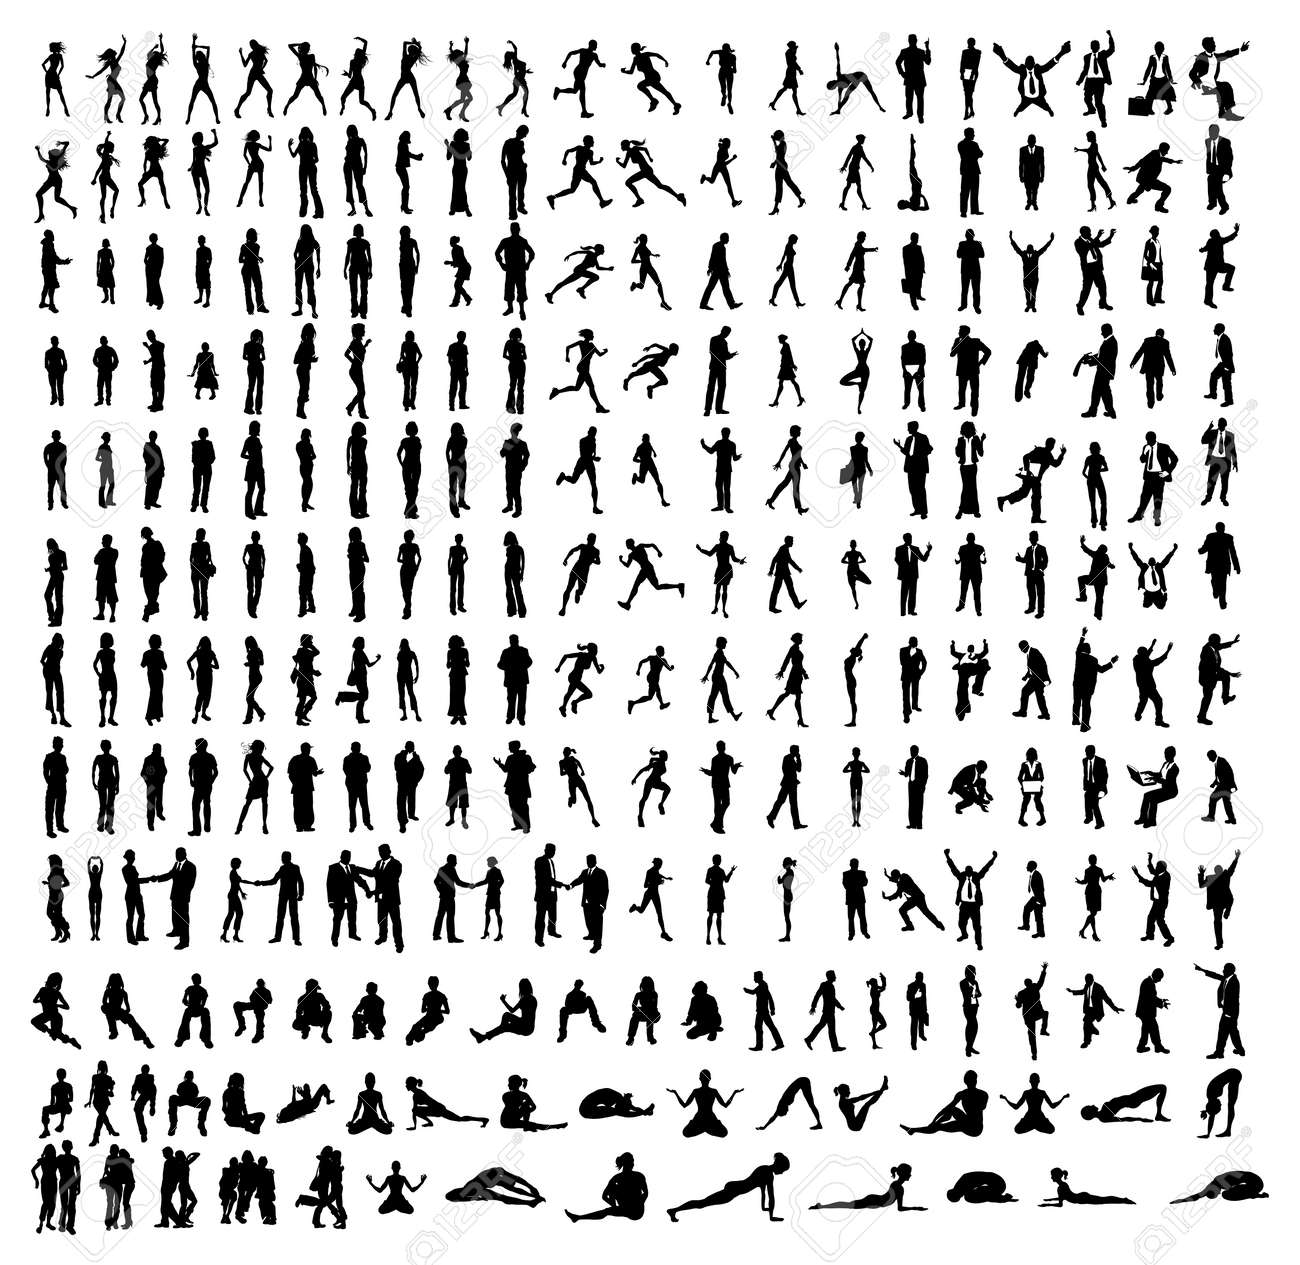 Many very detailed silhouettes including business, dancers, yoga etc. Stock Vector - 9088579